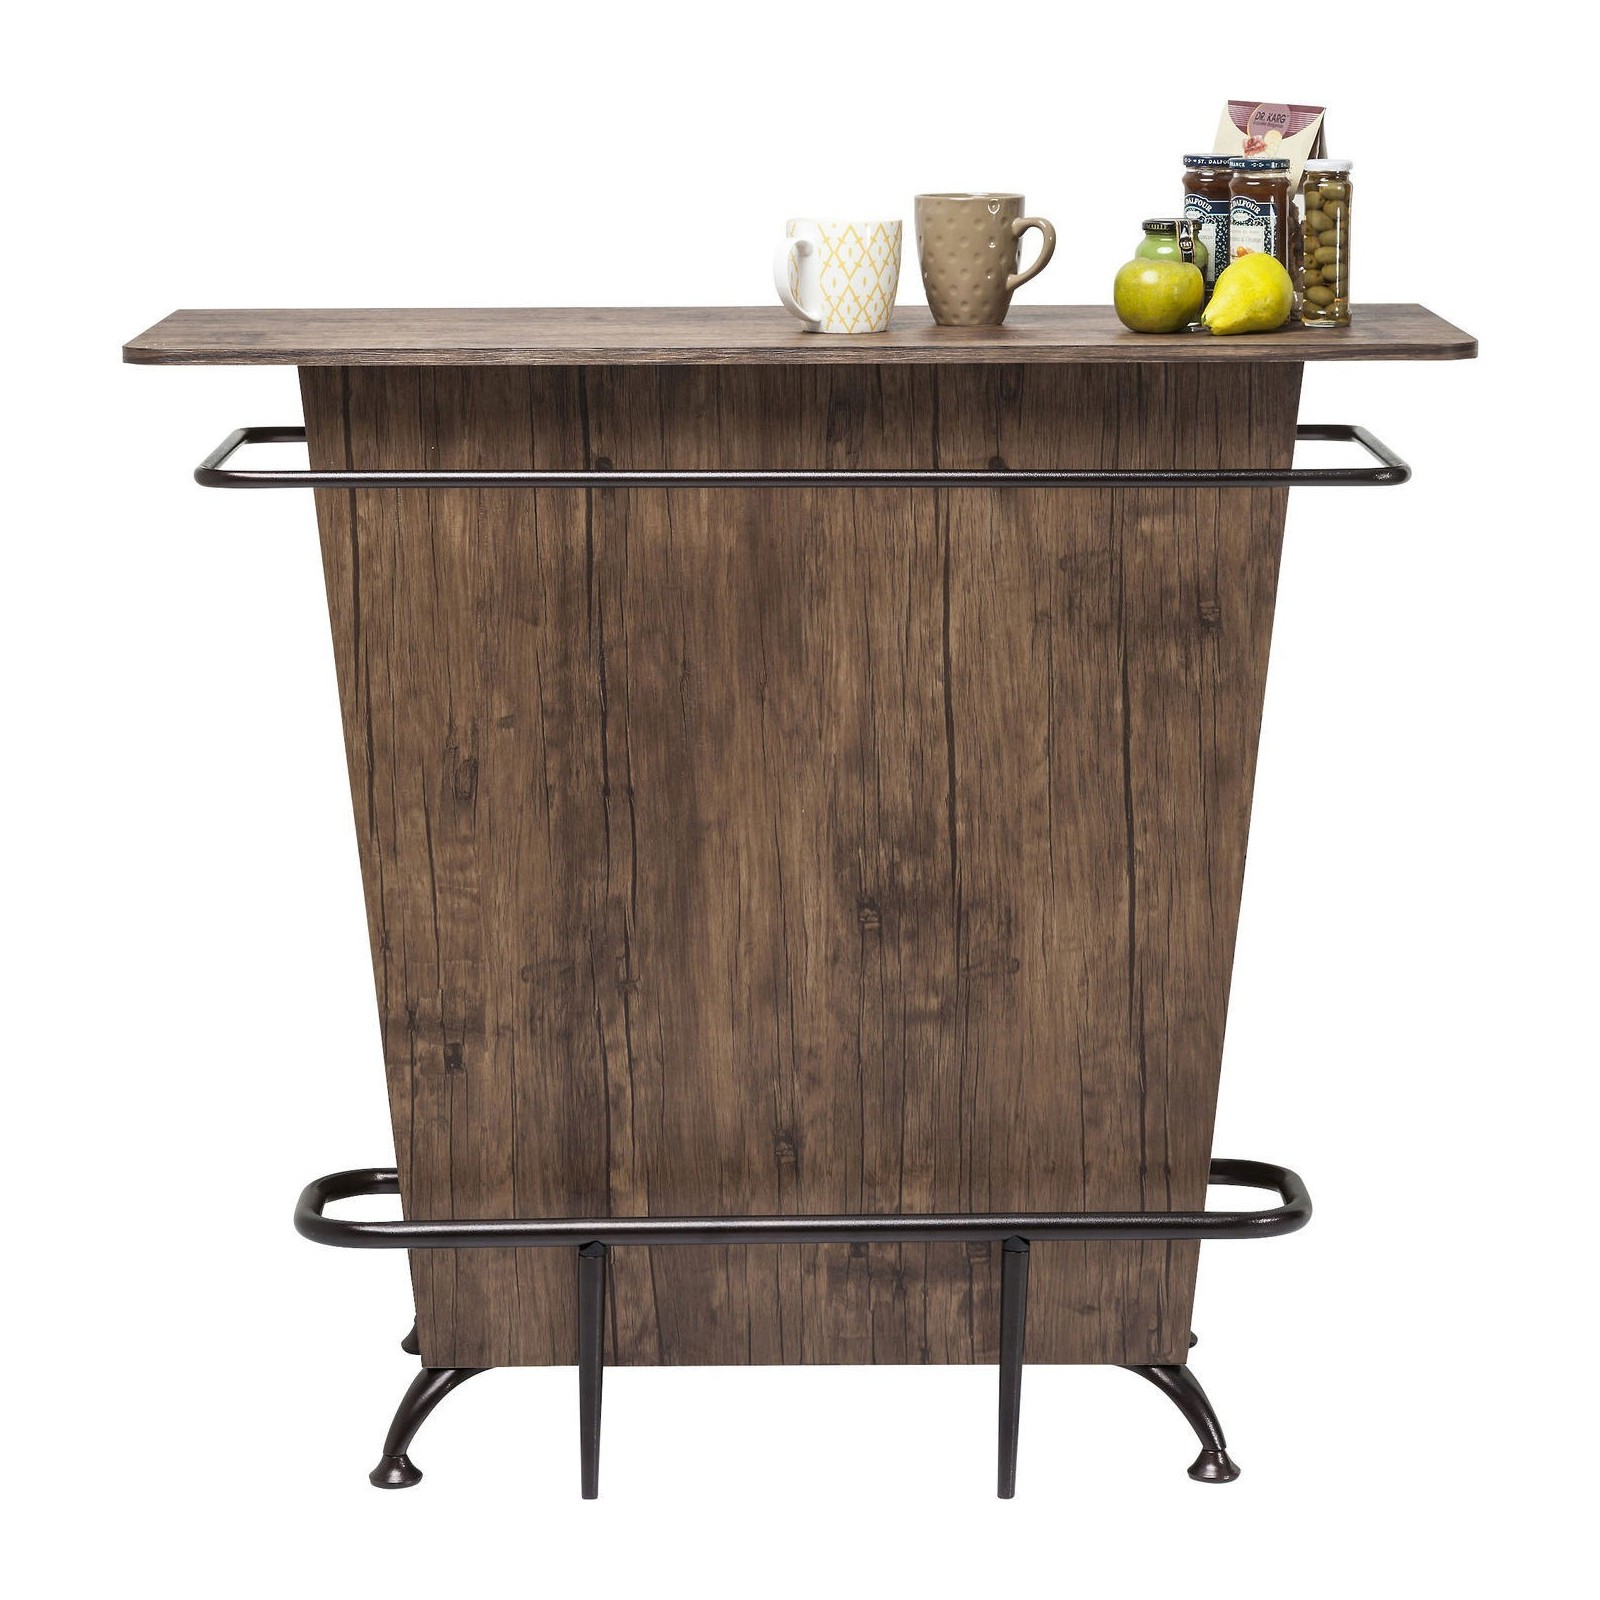 Bar rustique bois lady rock walnut kare design for Meuble de bar